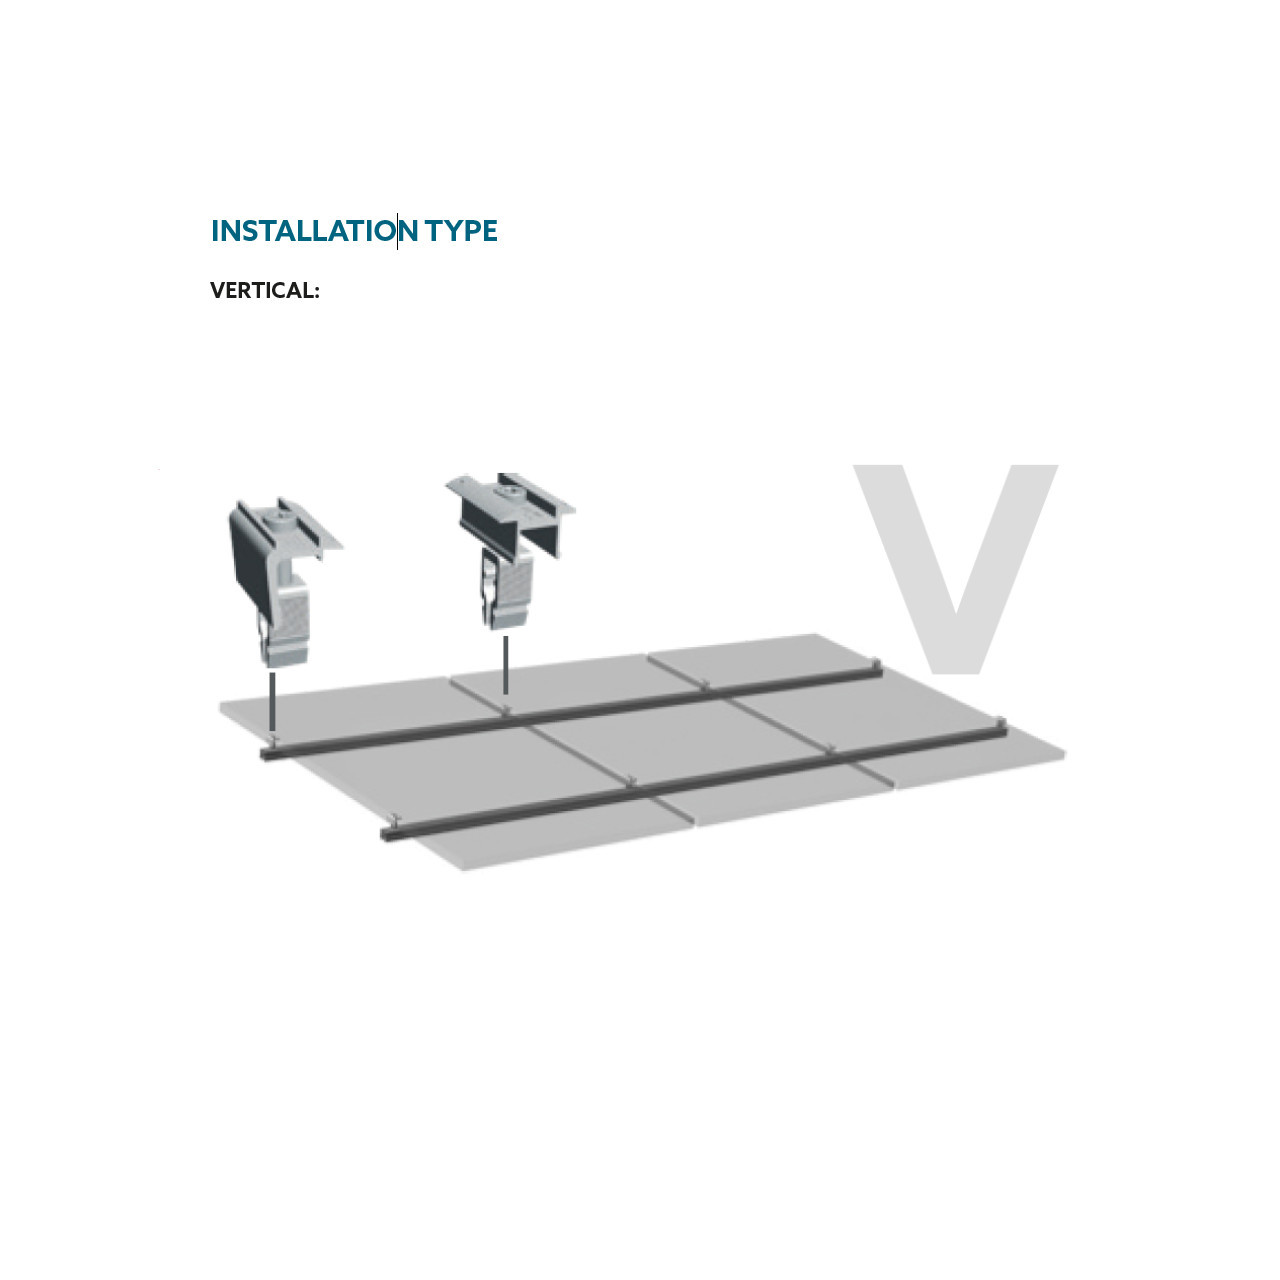 Schletter - Rapid16 Middle Clamp - Install Vertical